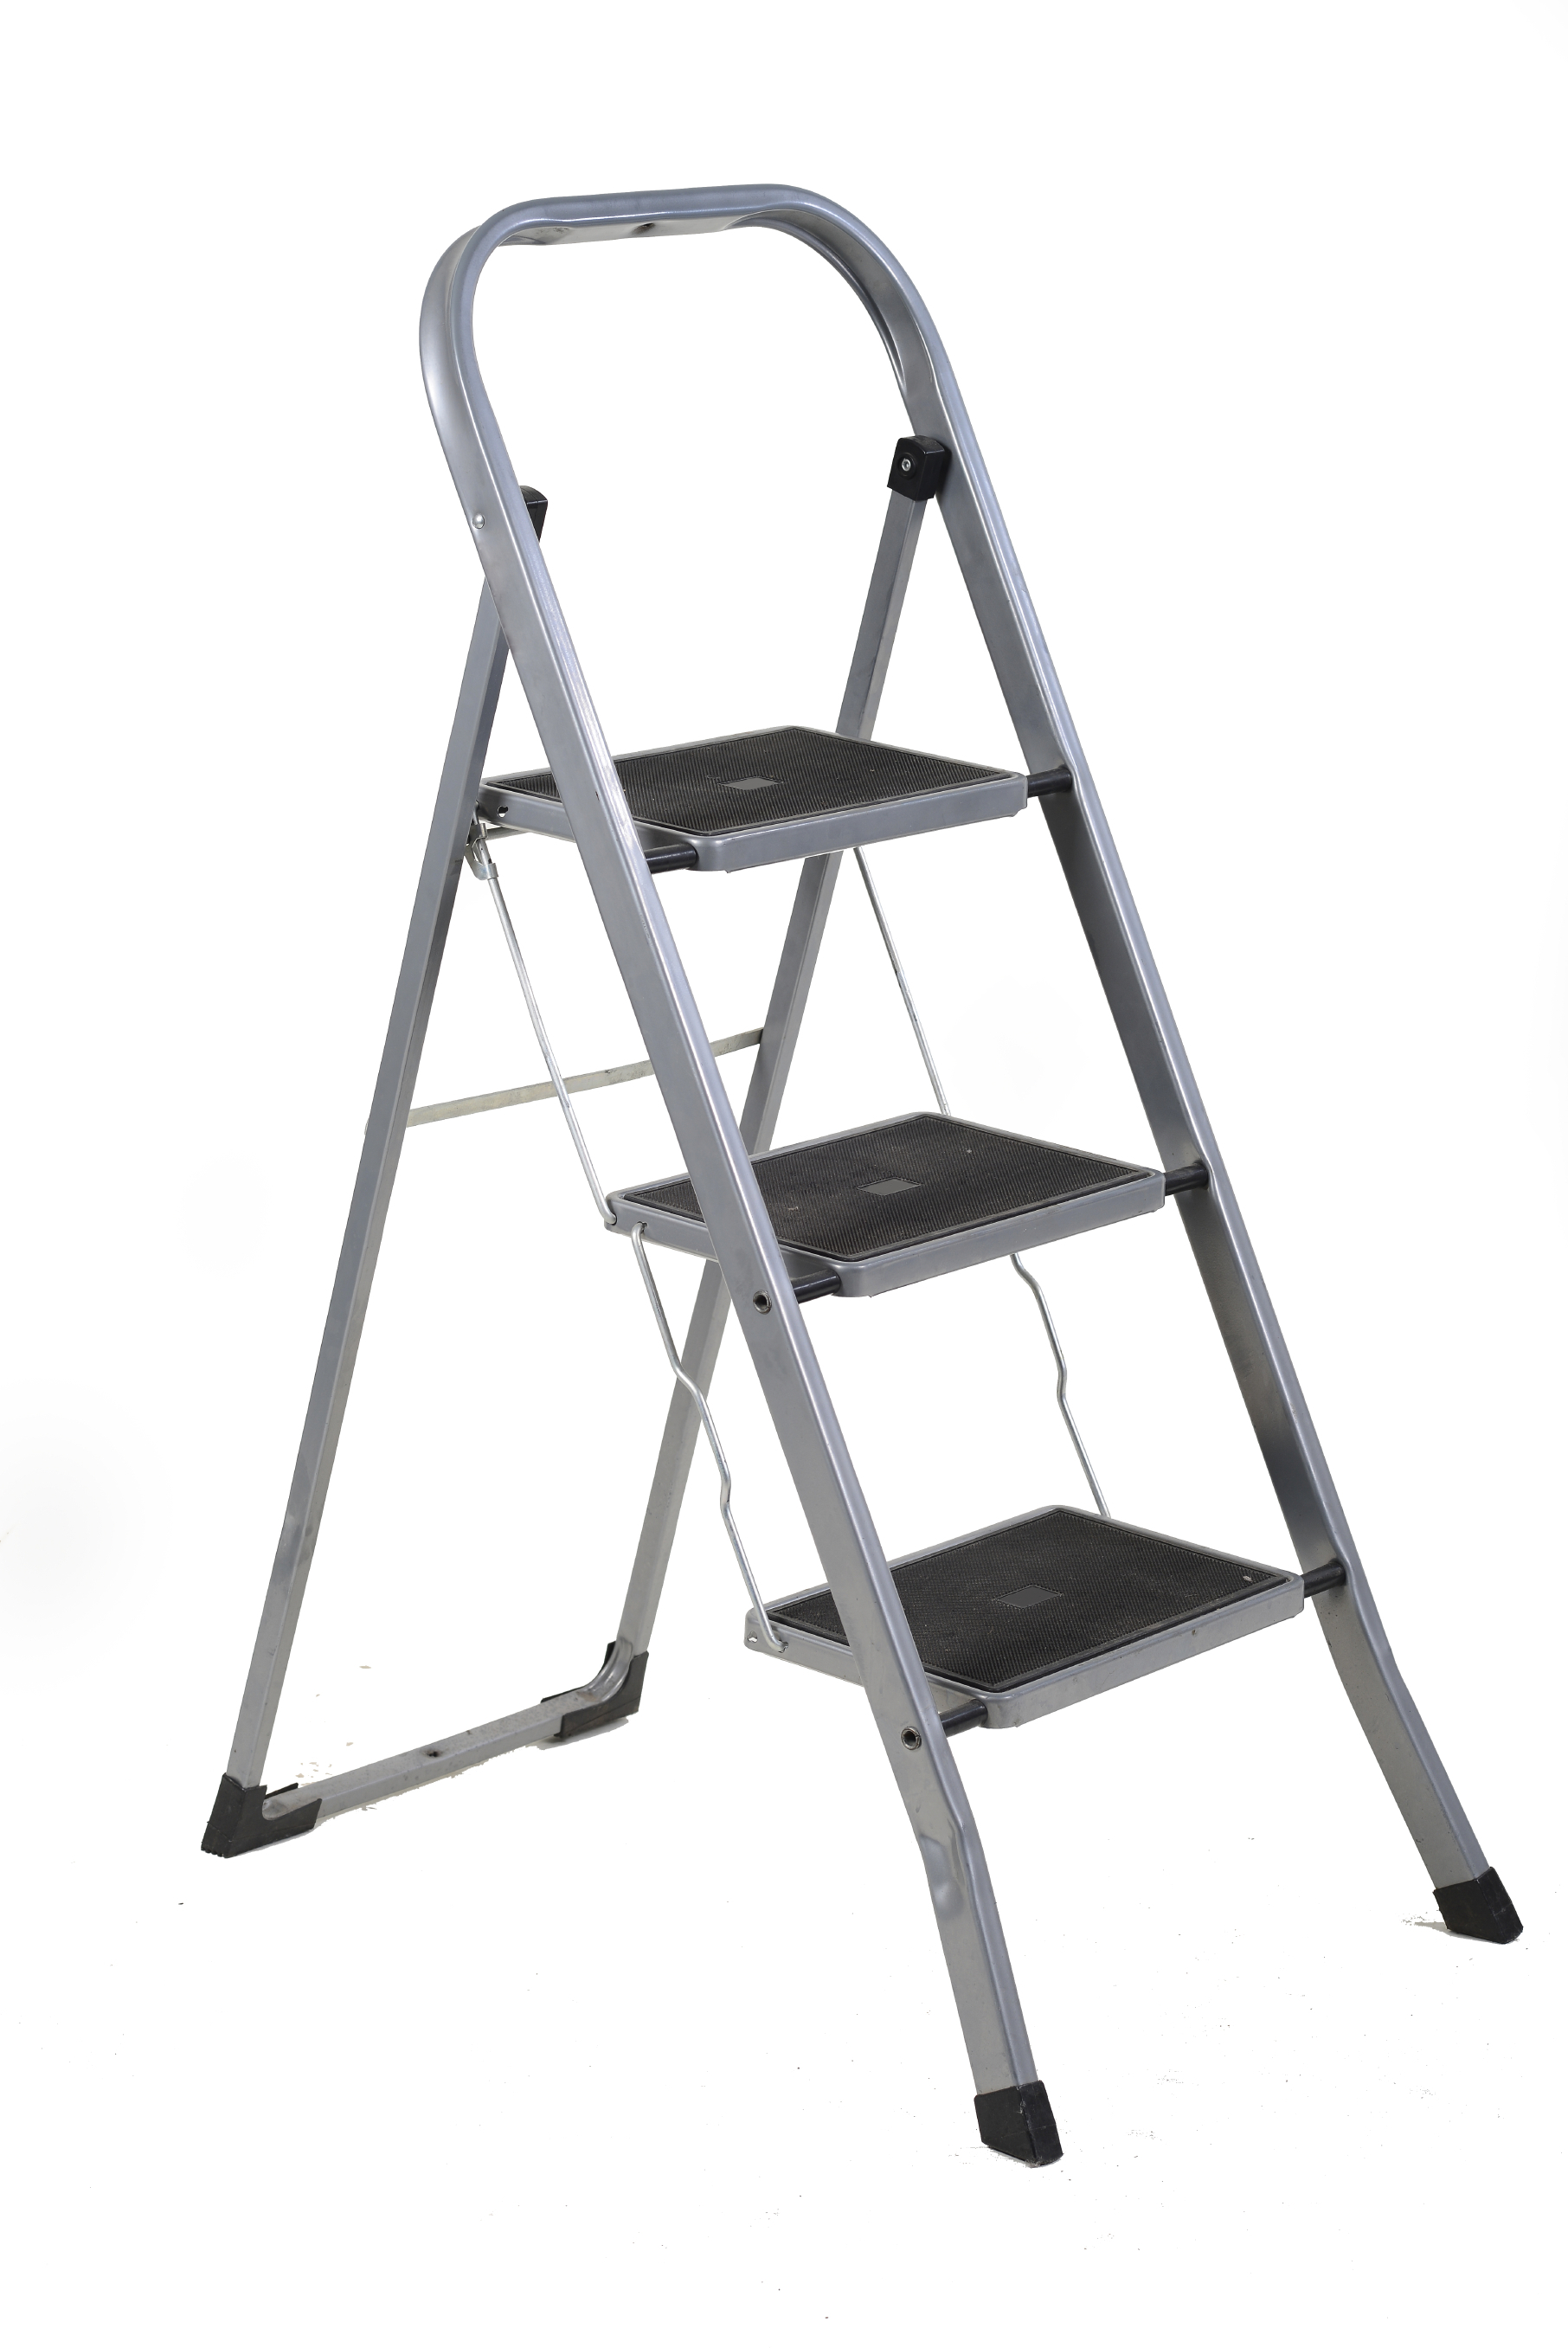 Benefits Rolling Ladders Offer The Users Over Other Types Of Ladders